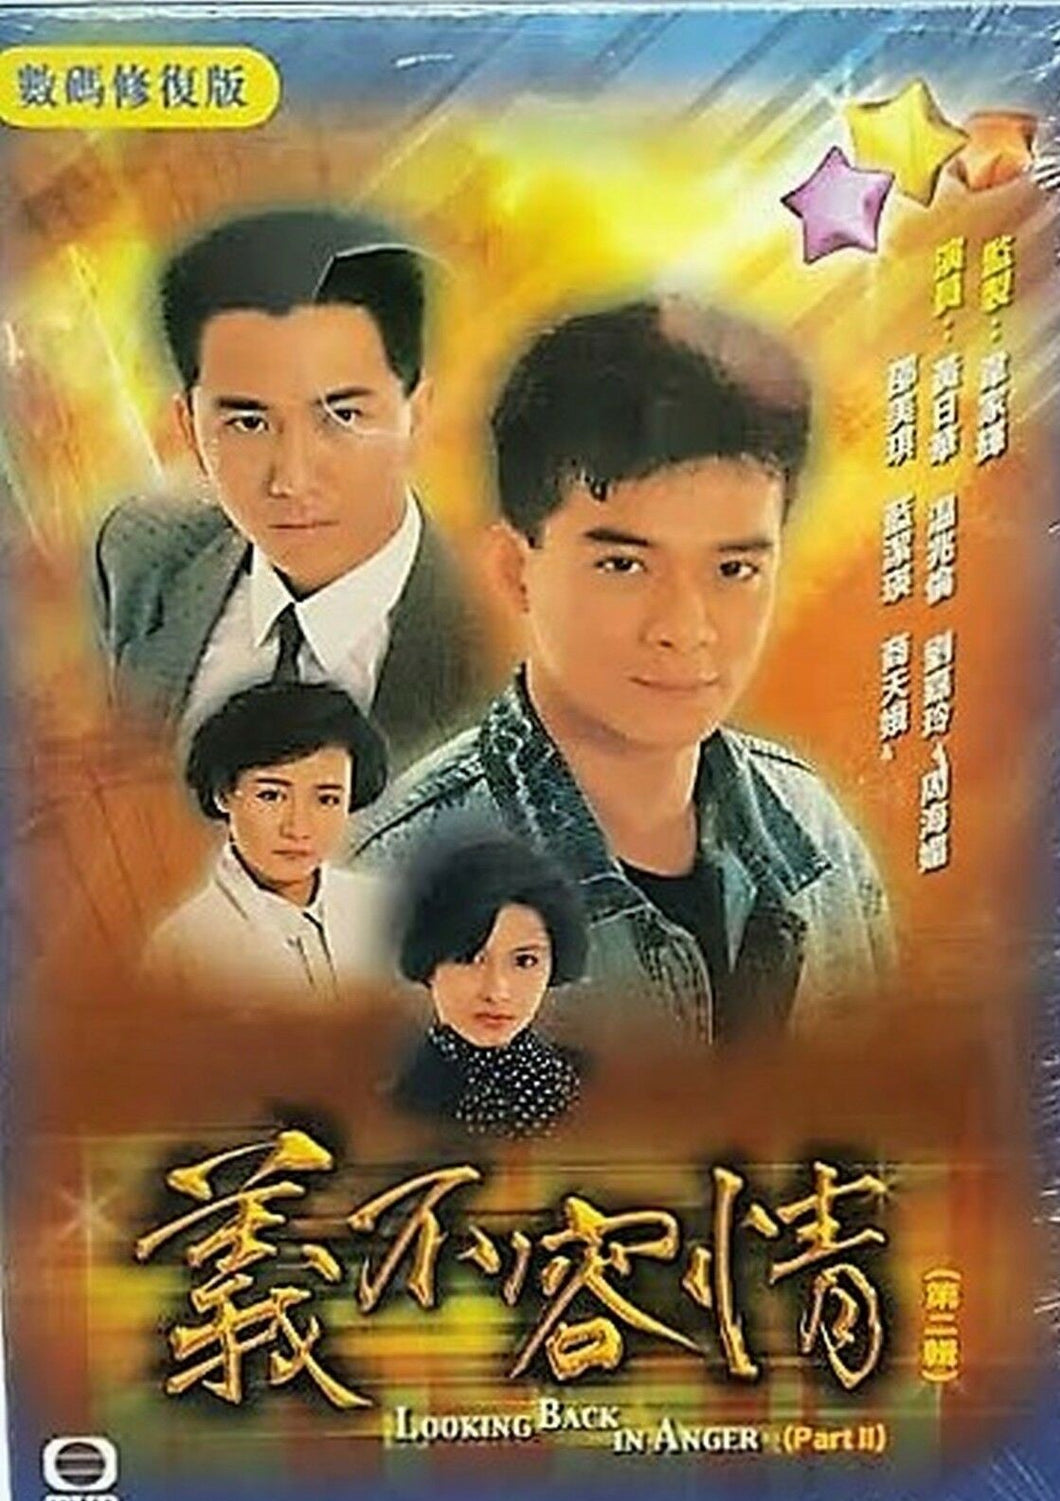 LOOKING BACK IN ANGER PART II end 義不容情 1989 (TVB) 5DVD (NON ENG SUB ) REGION FREE